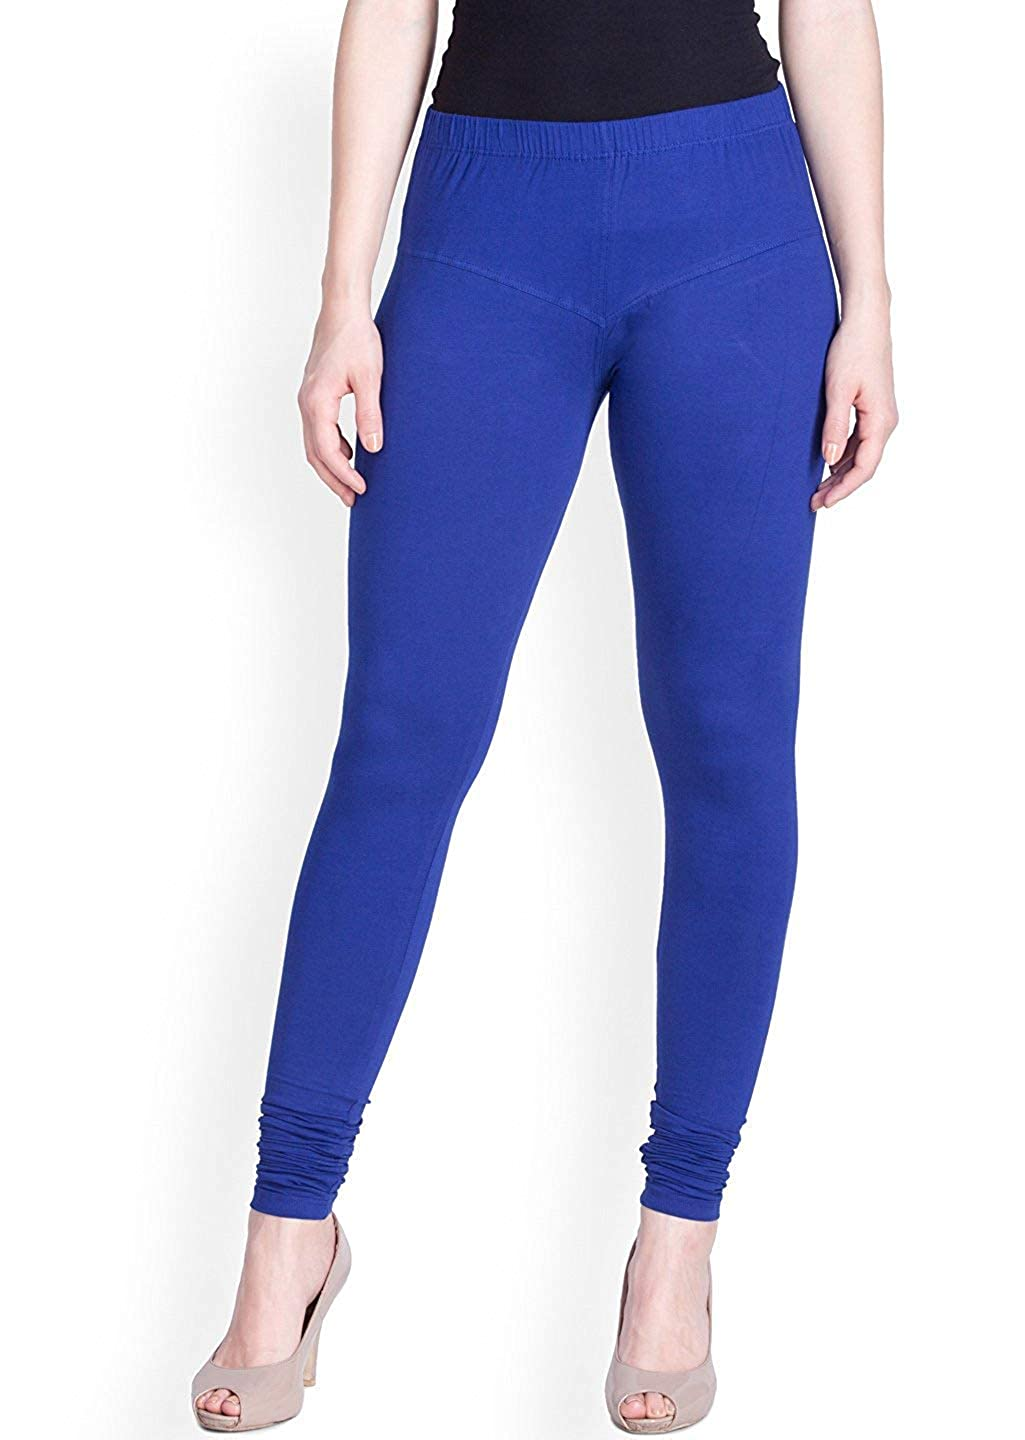 LYRA Women's Royal Blue Churidar Leggings